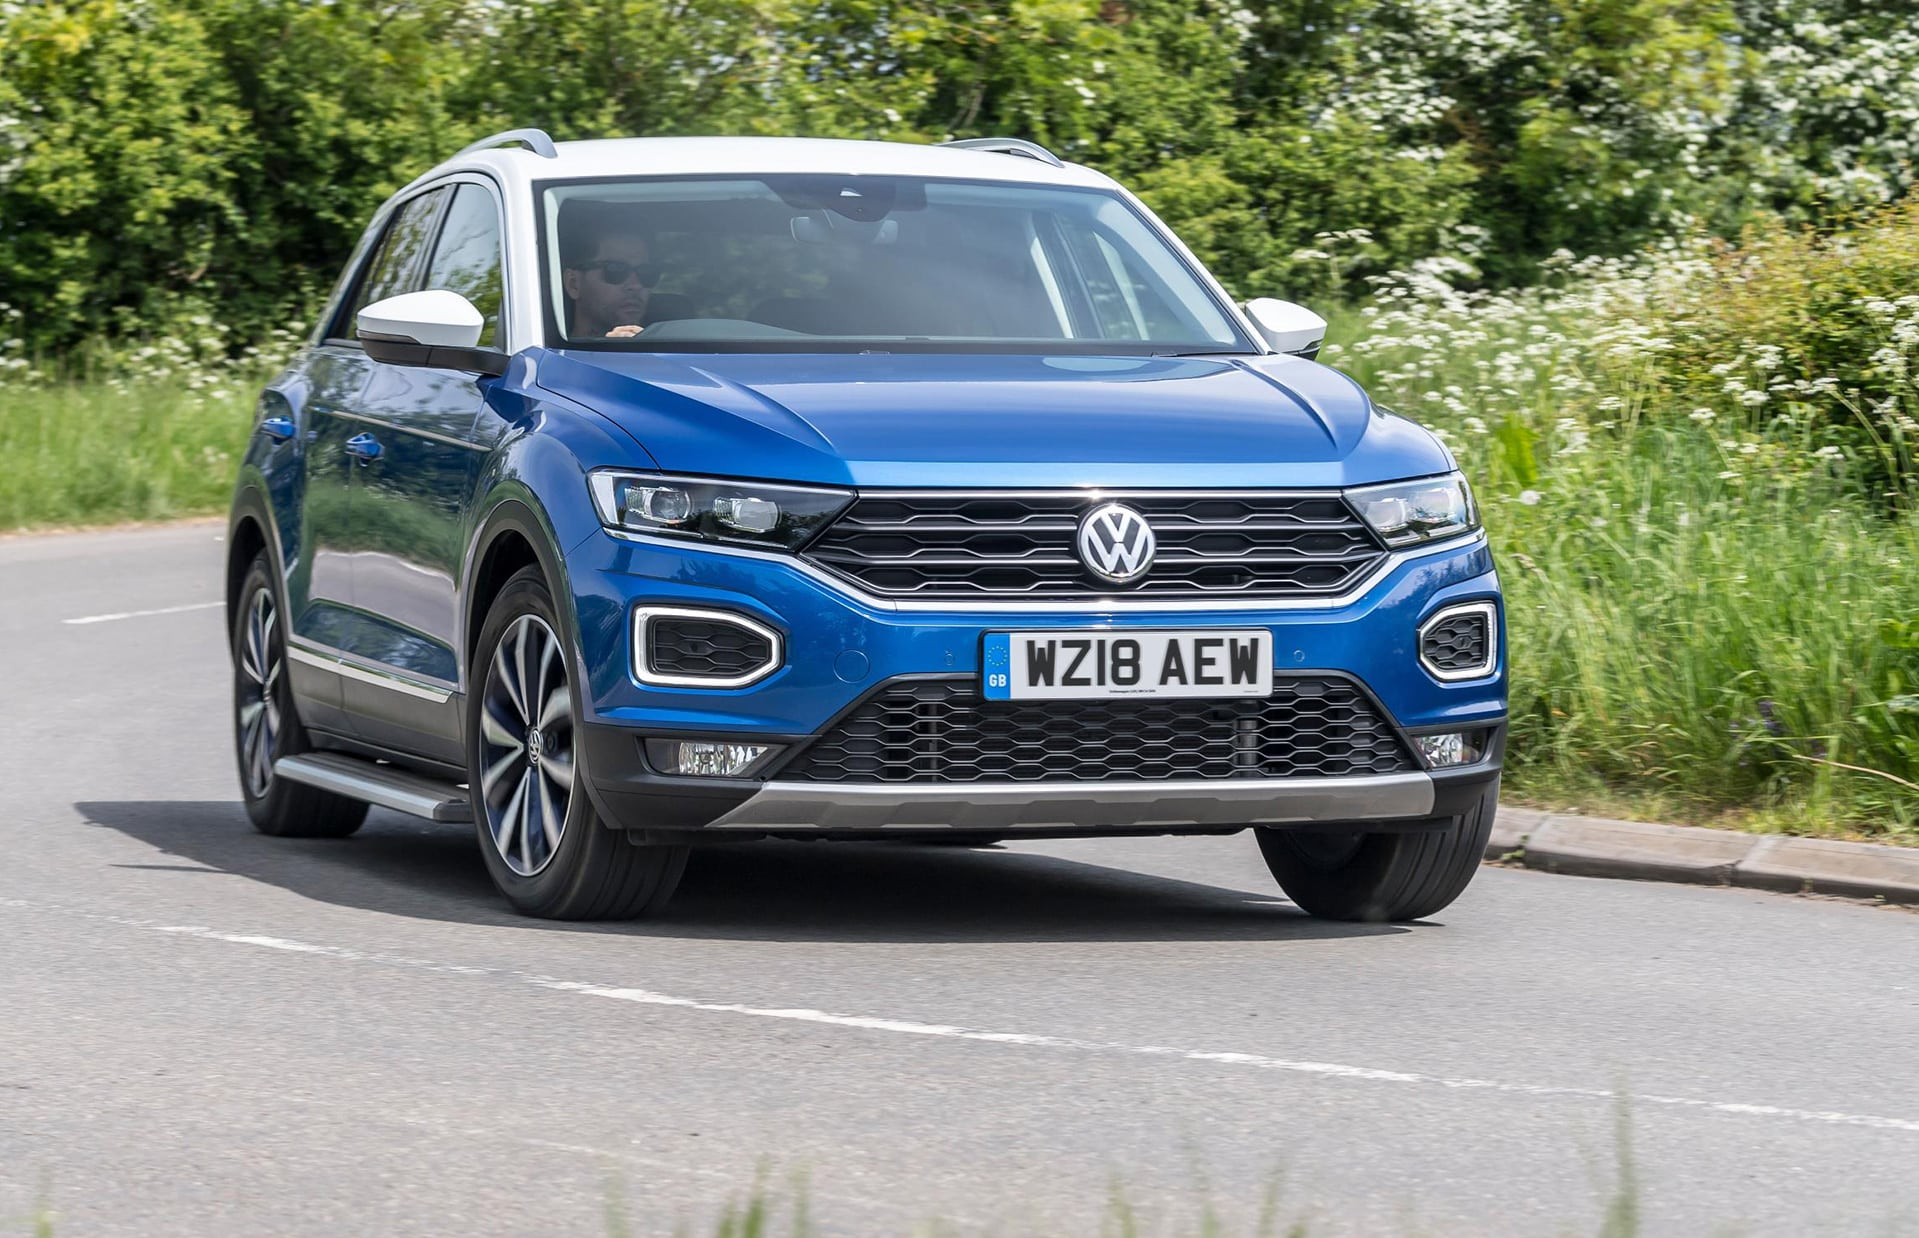 T Roc Suv New Diesel For Volkswagen T Roc Suv The Car Expert